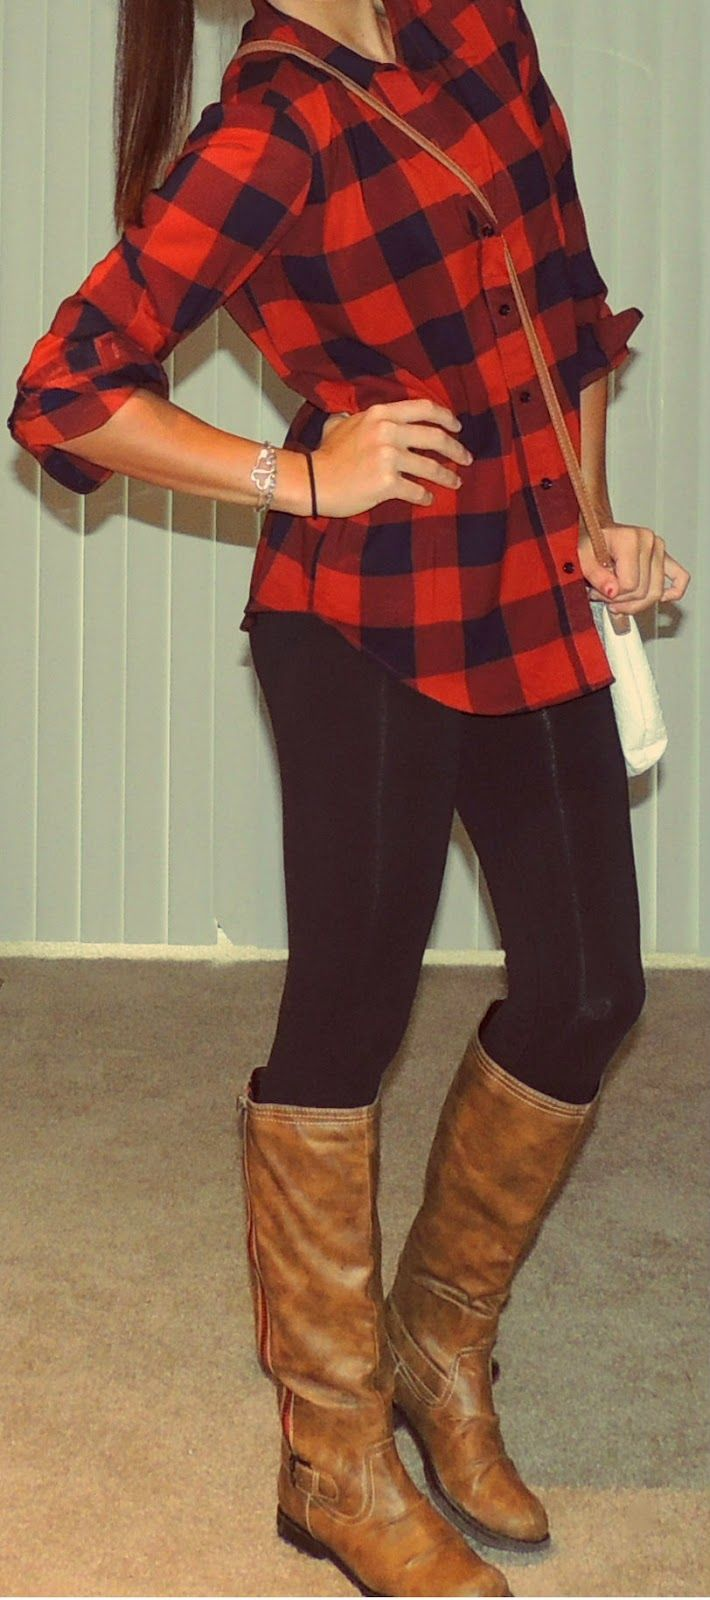 Plaid & Boots. An outfit on Pinterest that I actually own! Just wore it this weekend!